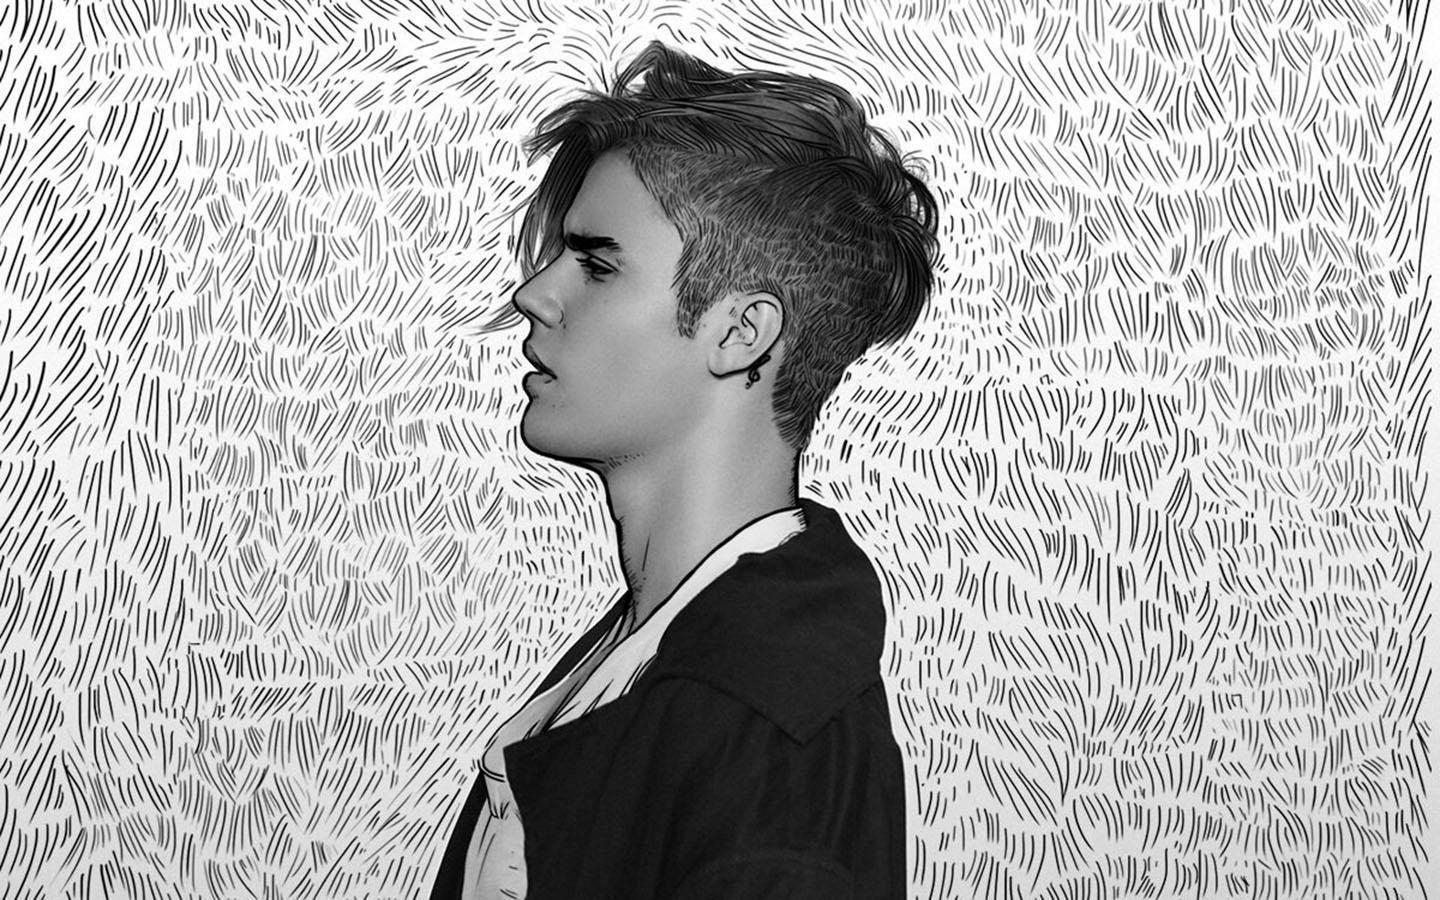 justin bieber new wallpapers 2016 - wallpaper cave